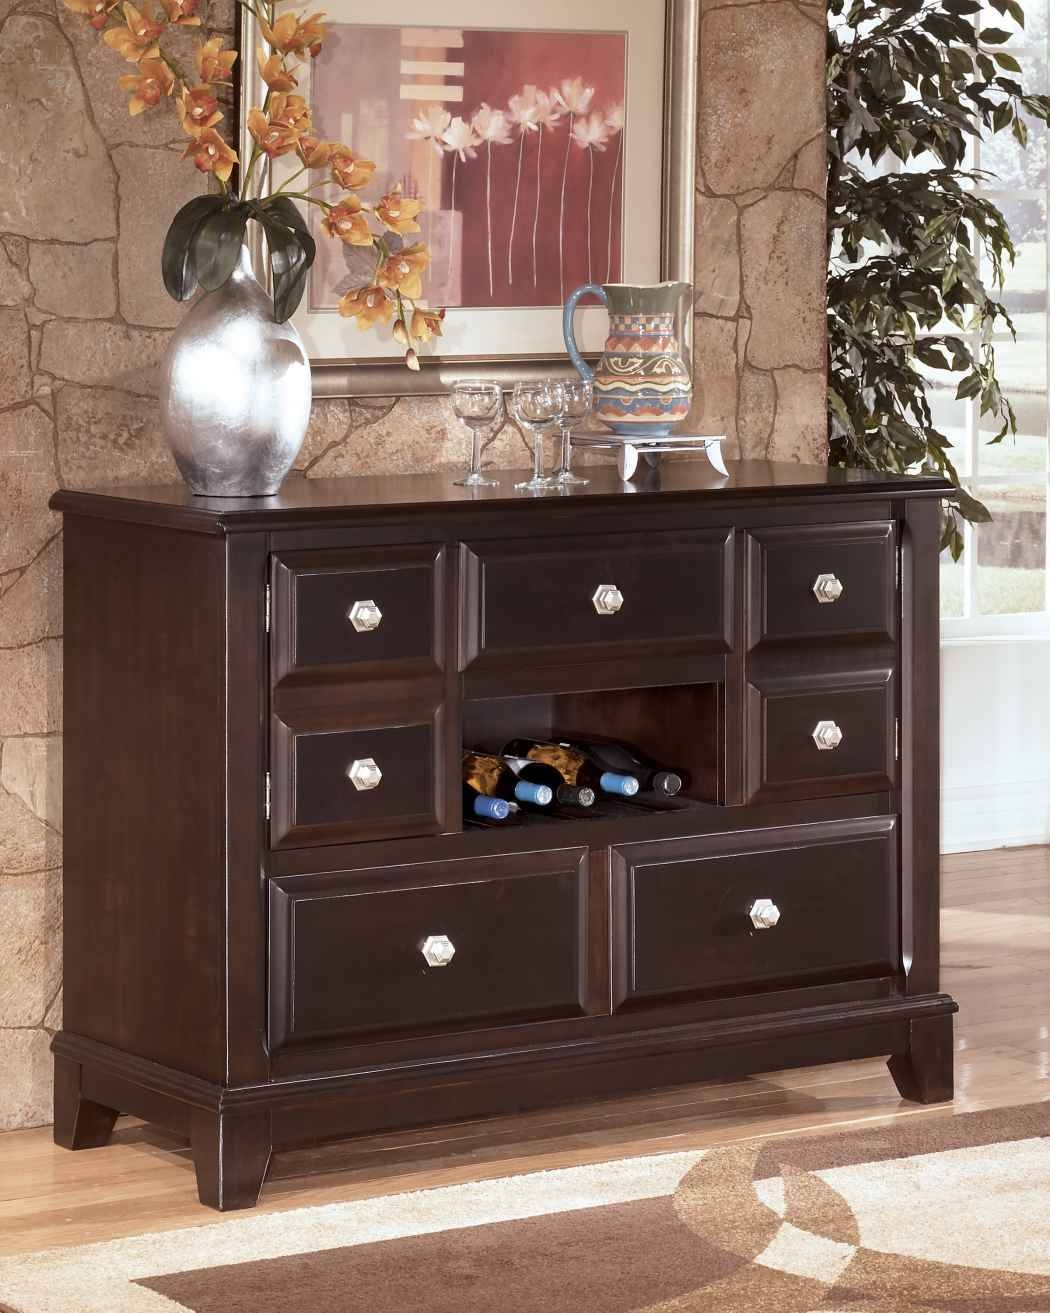 Dining Room Sideboards For Sale In Gray Room Buffet Sideboard Room Intended For Latest Sideboards Decors (#9 of 15)